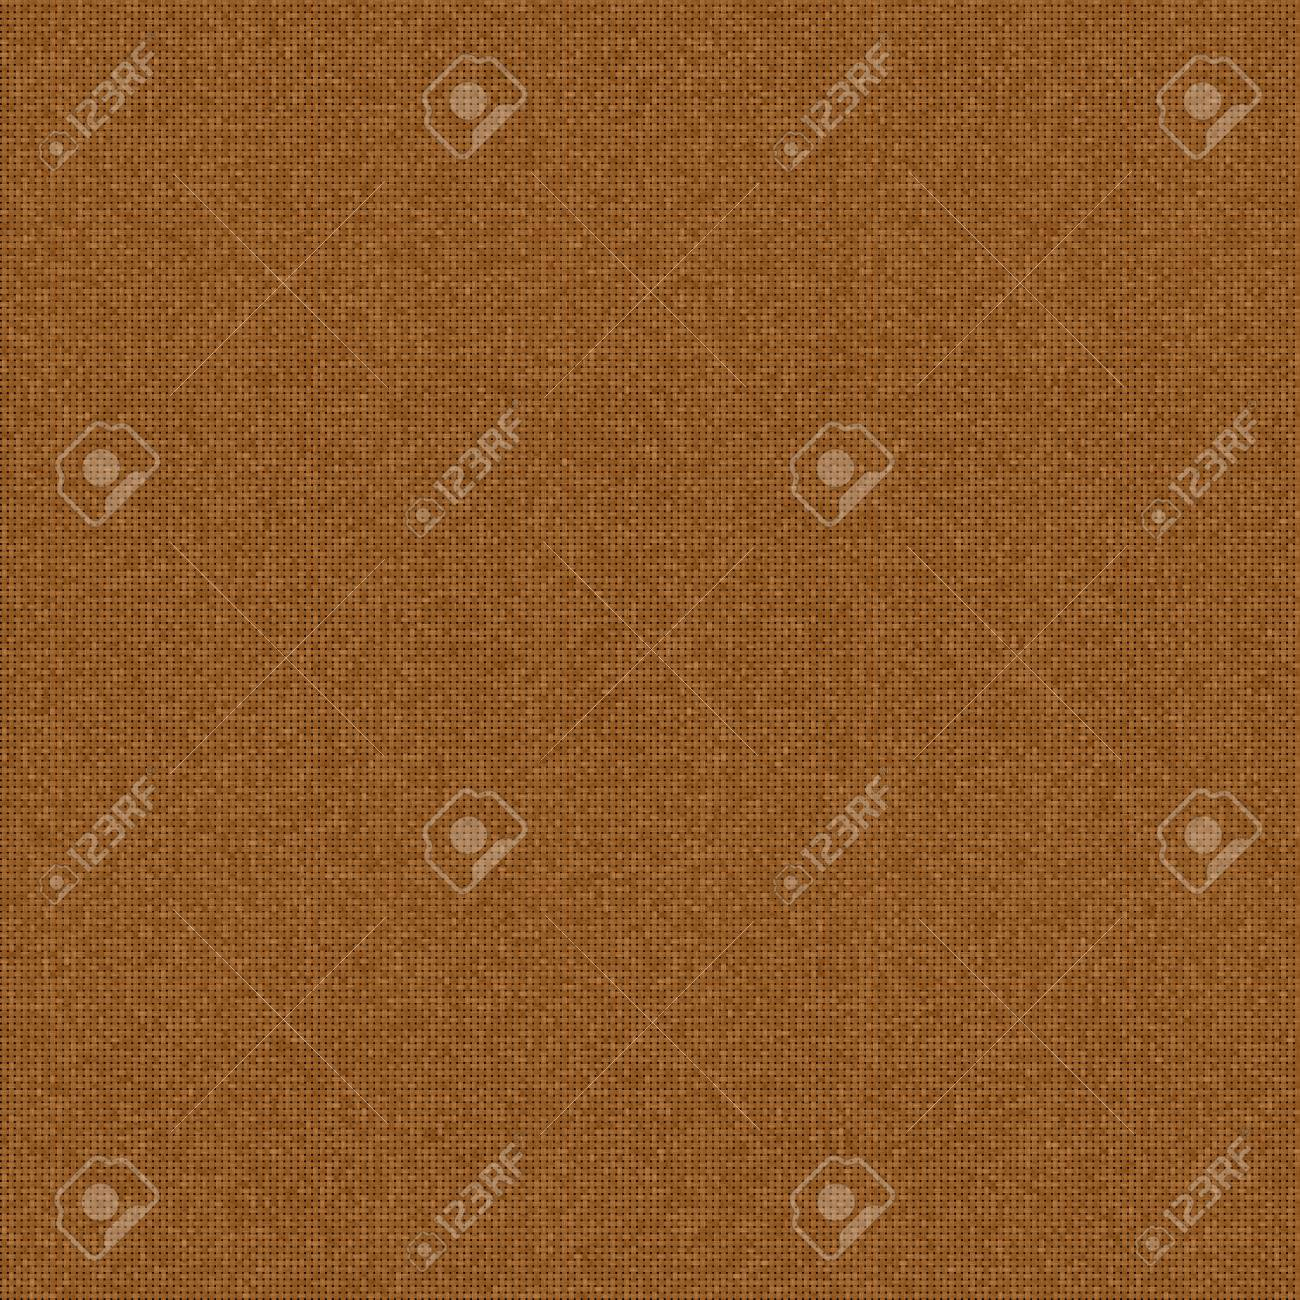 Brown Seamless Fabric Textures Brown Seamless Fabric Texture Pattern